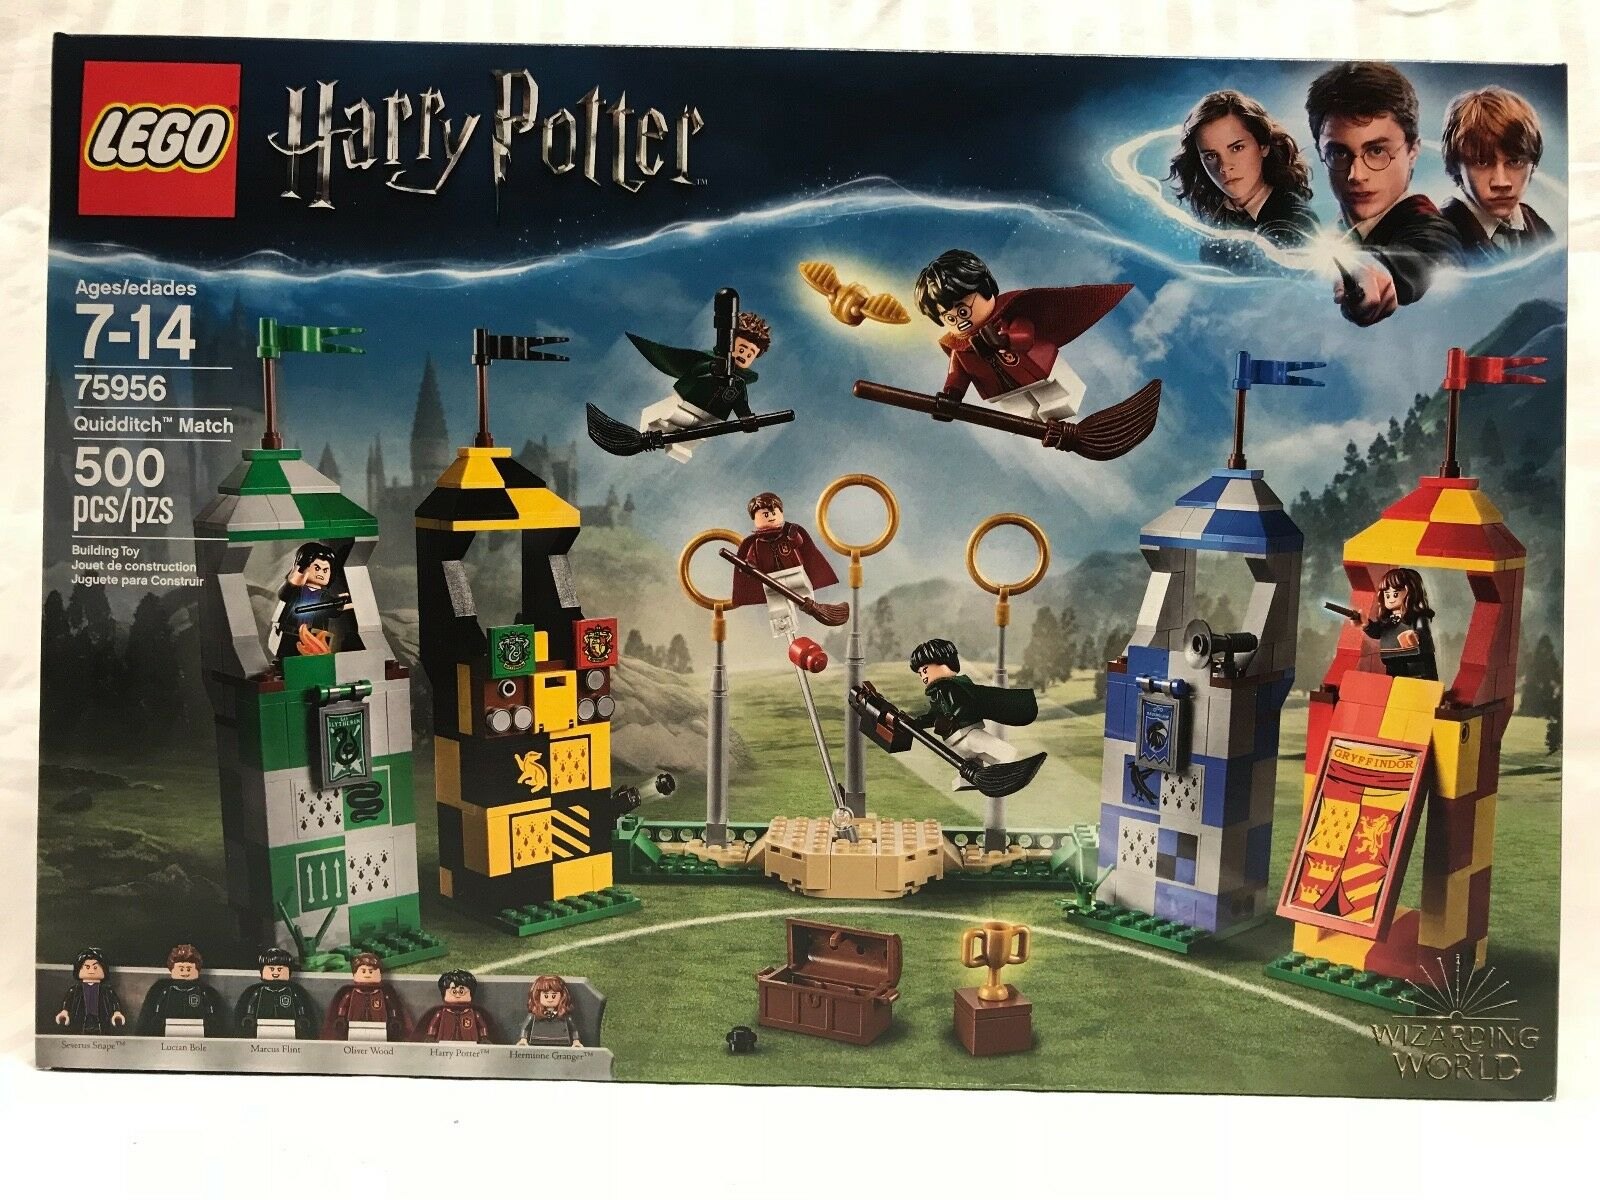 LEGO HARRY POTTER QUIDDITCH MATCH SET 75956 NEW IN HAND WIZARDING WORLD 2018